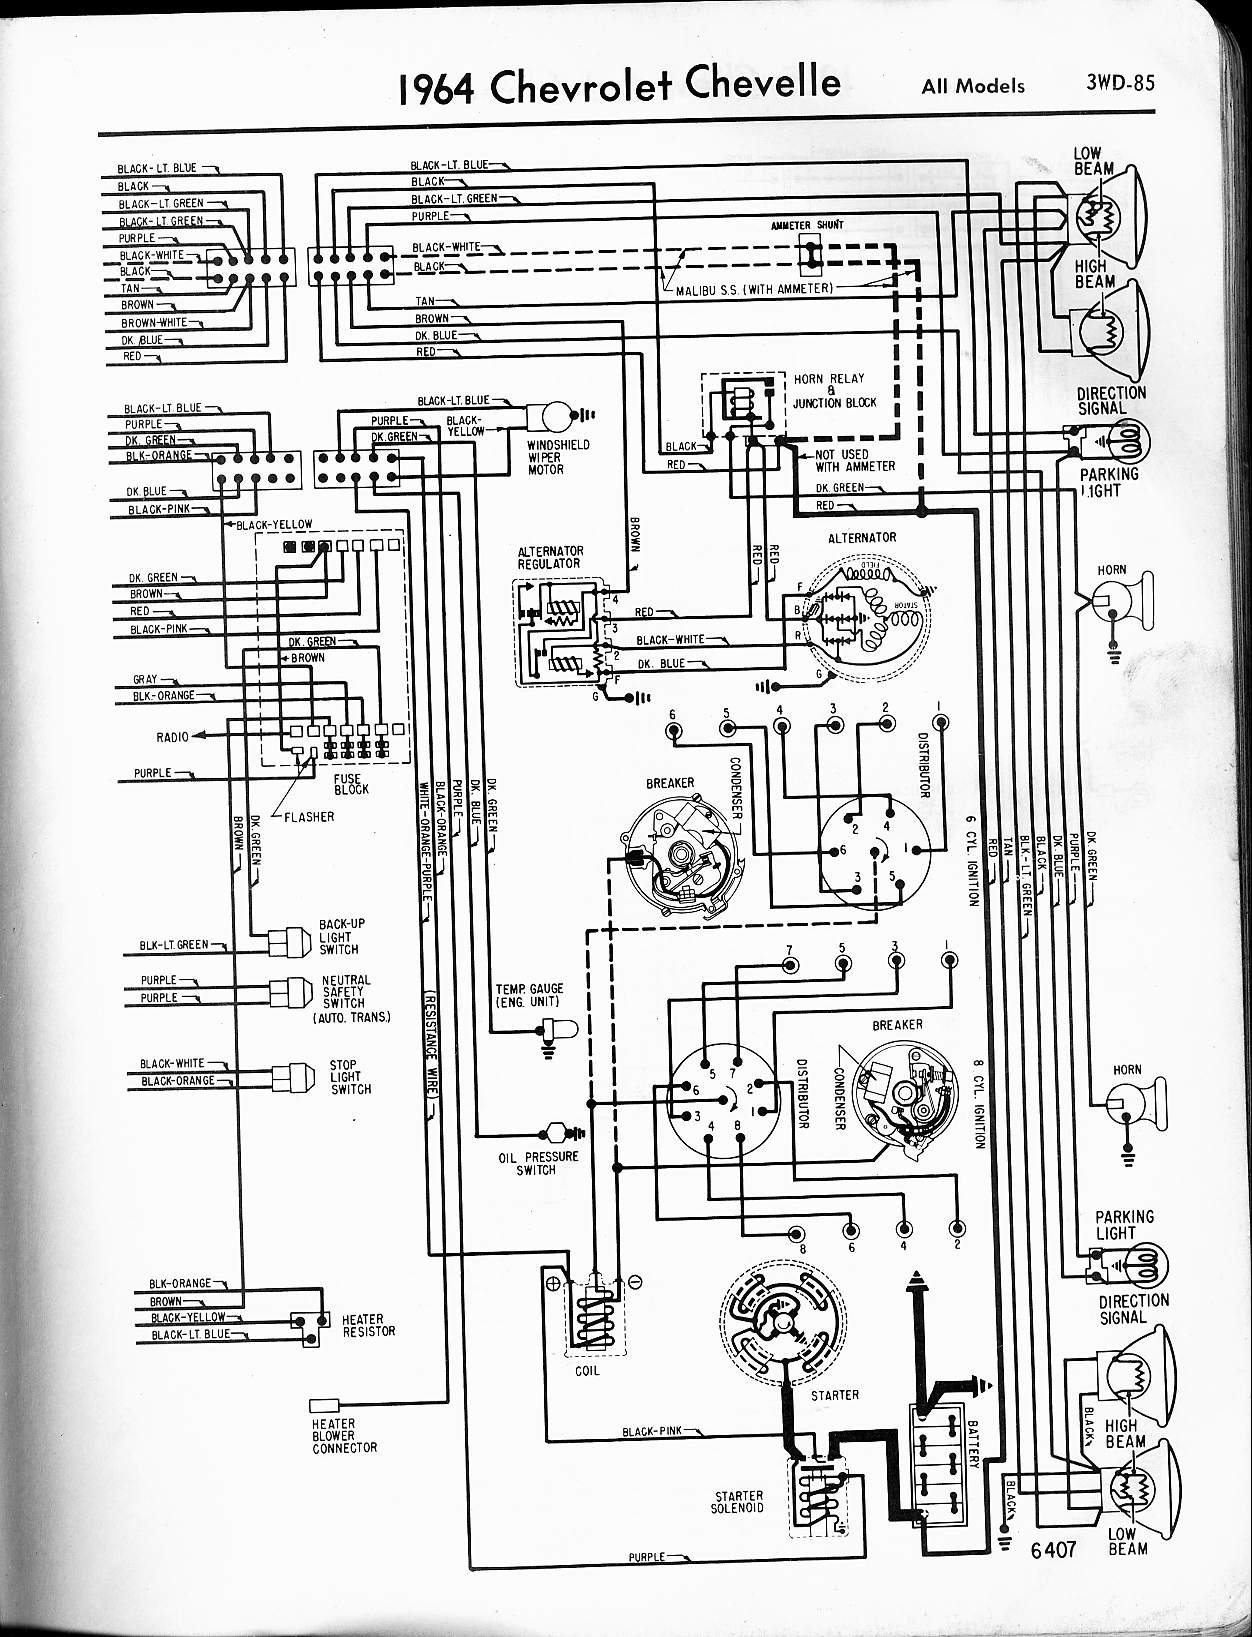 1964 chevy impala wiring diagram coil house wiring diagram symbols u2022 rh maxturner co 1967 impala ignition wiring diagram 1967 impala headlight wiring diagram